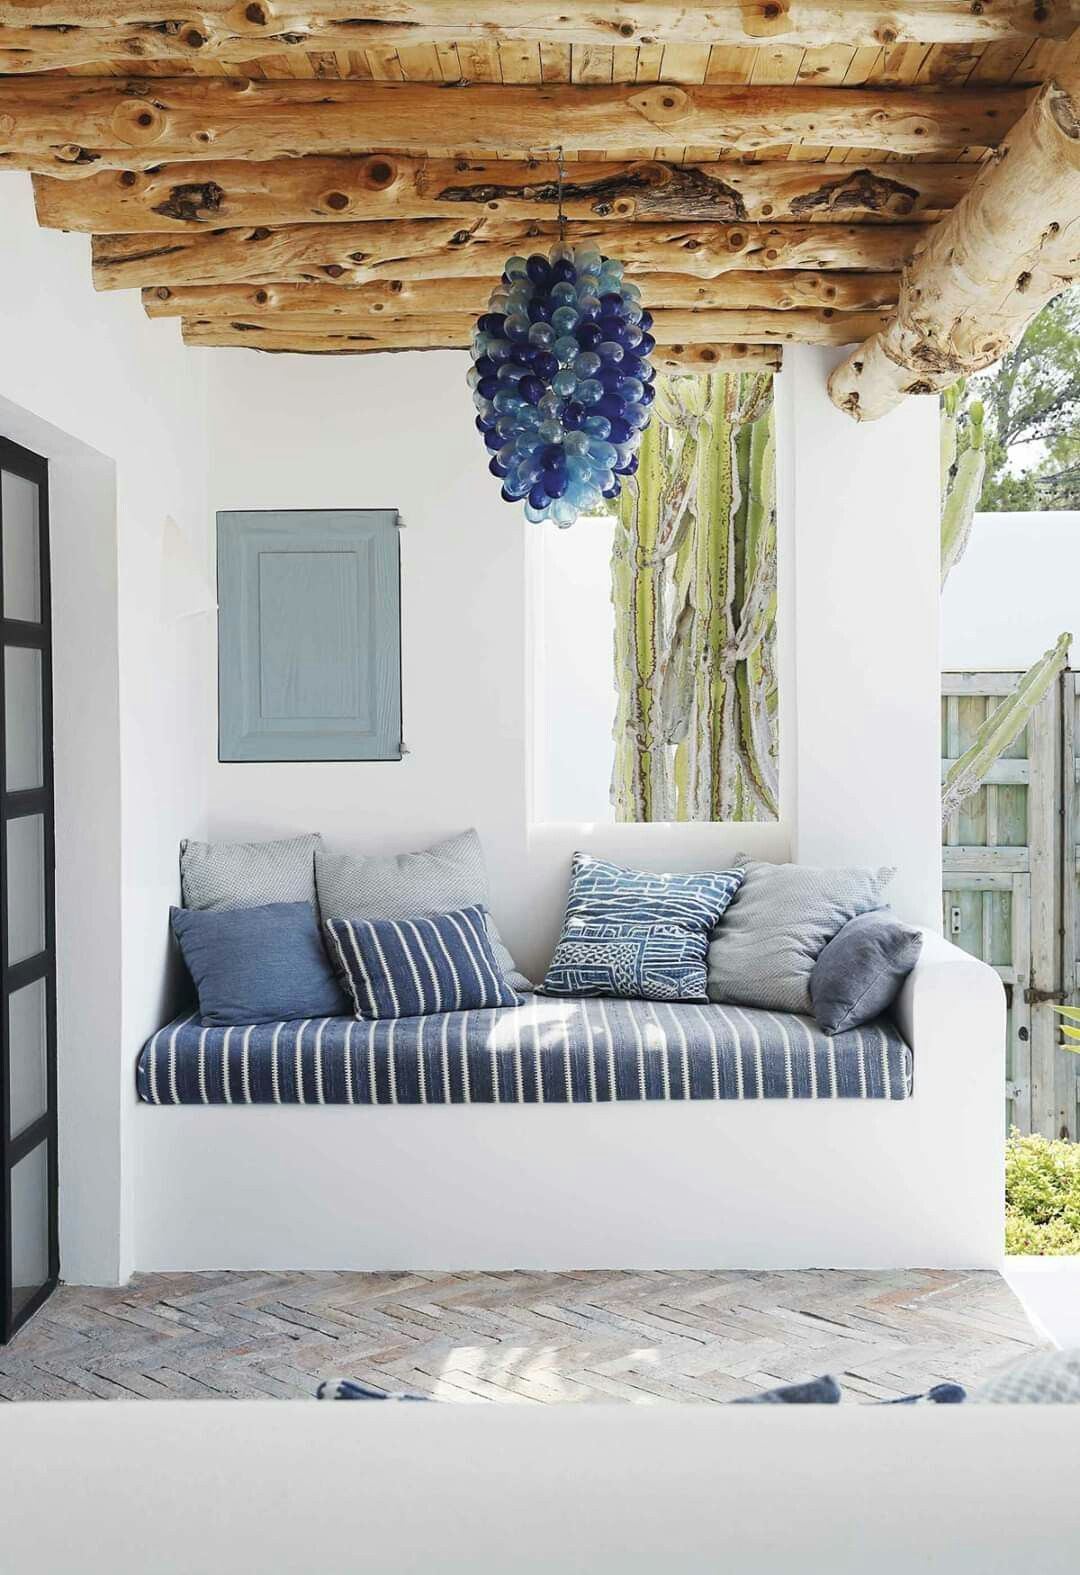 11 - A mini masonry bench adds a dose of comfort